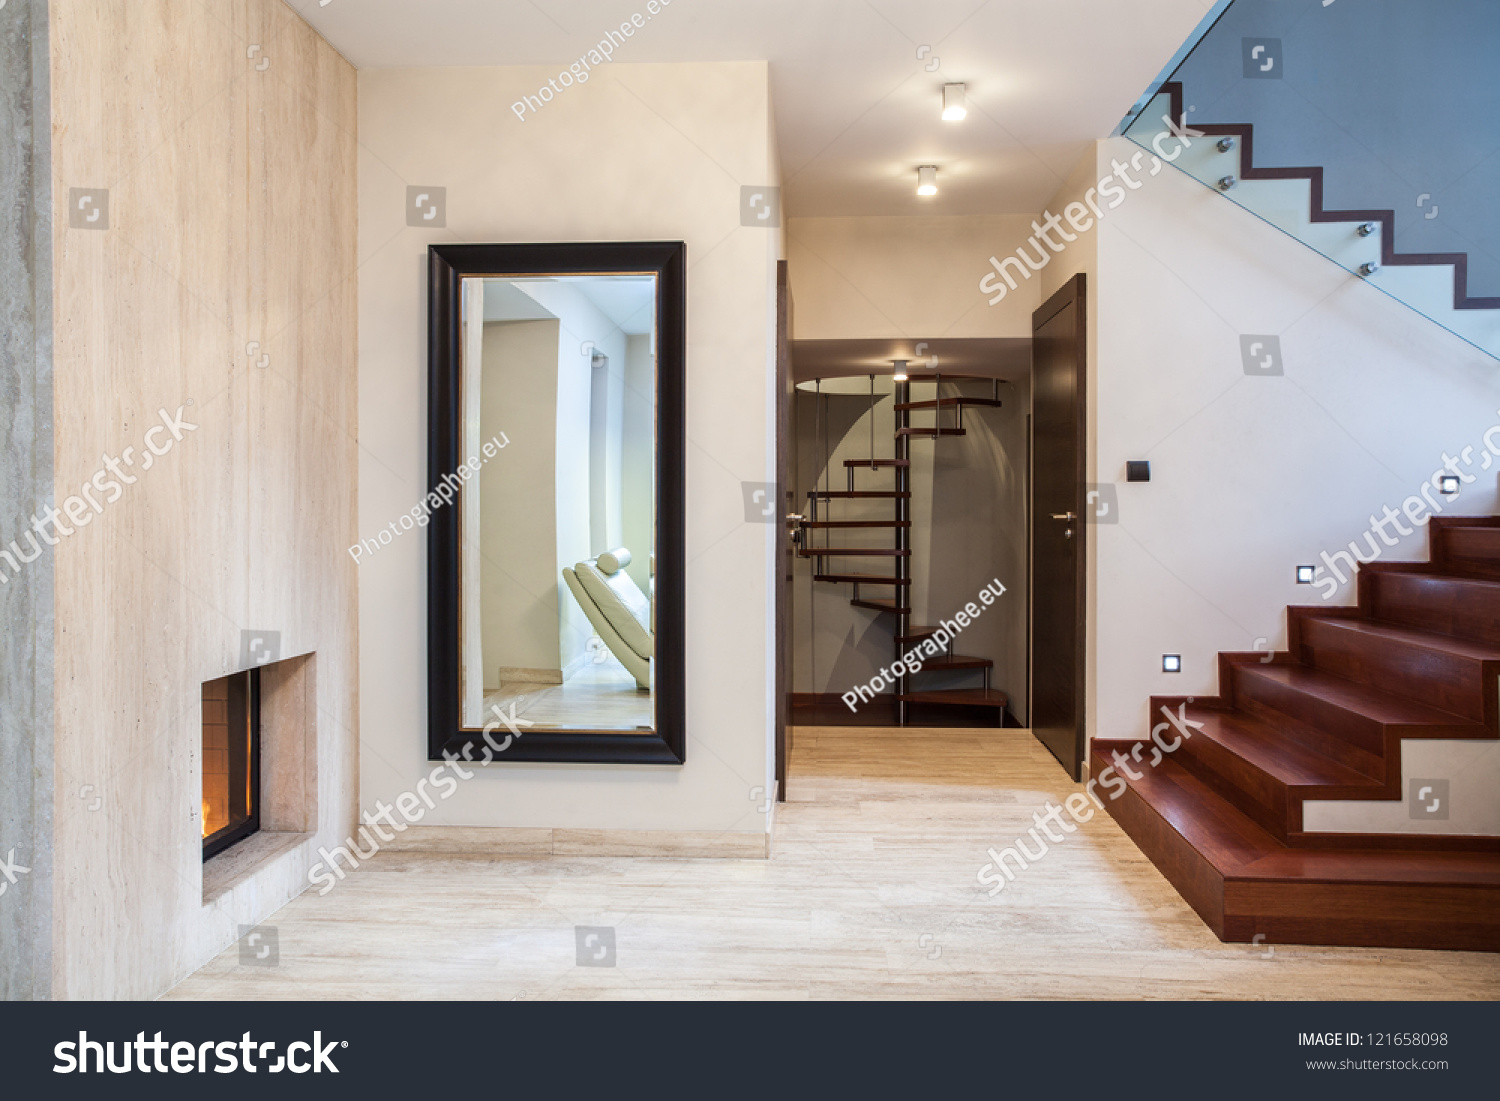 travertine house: huge mirror and wooden stairs stock photo